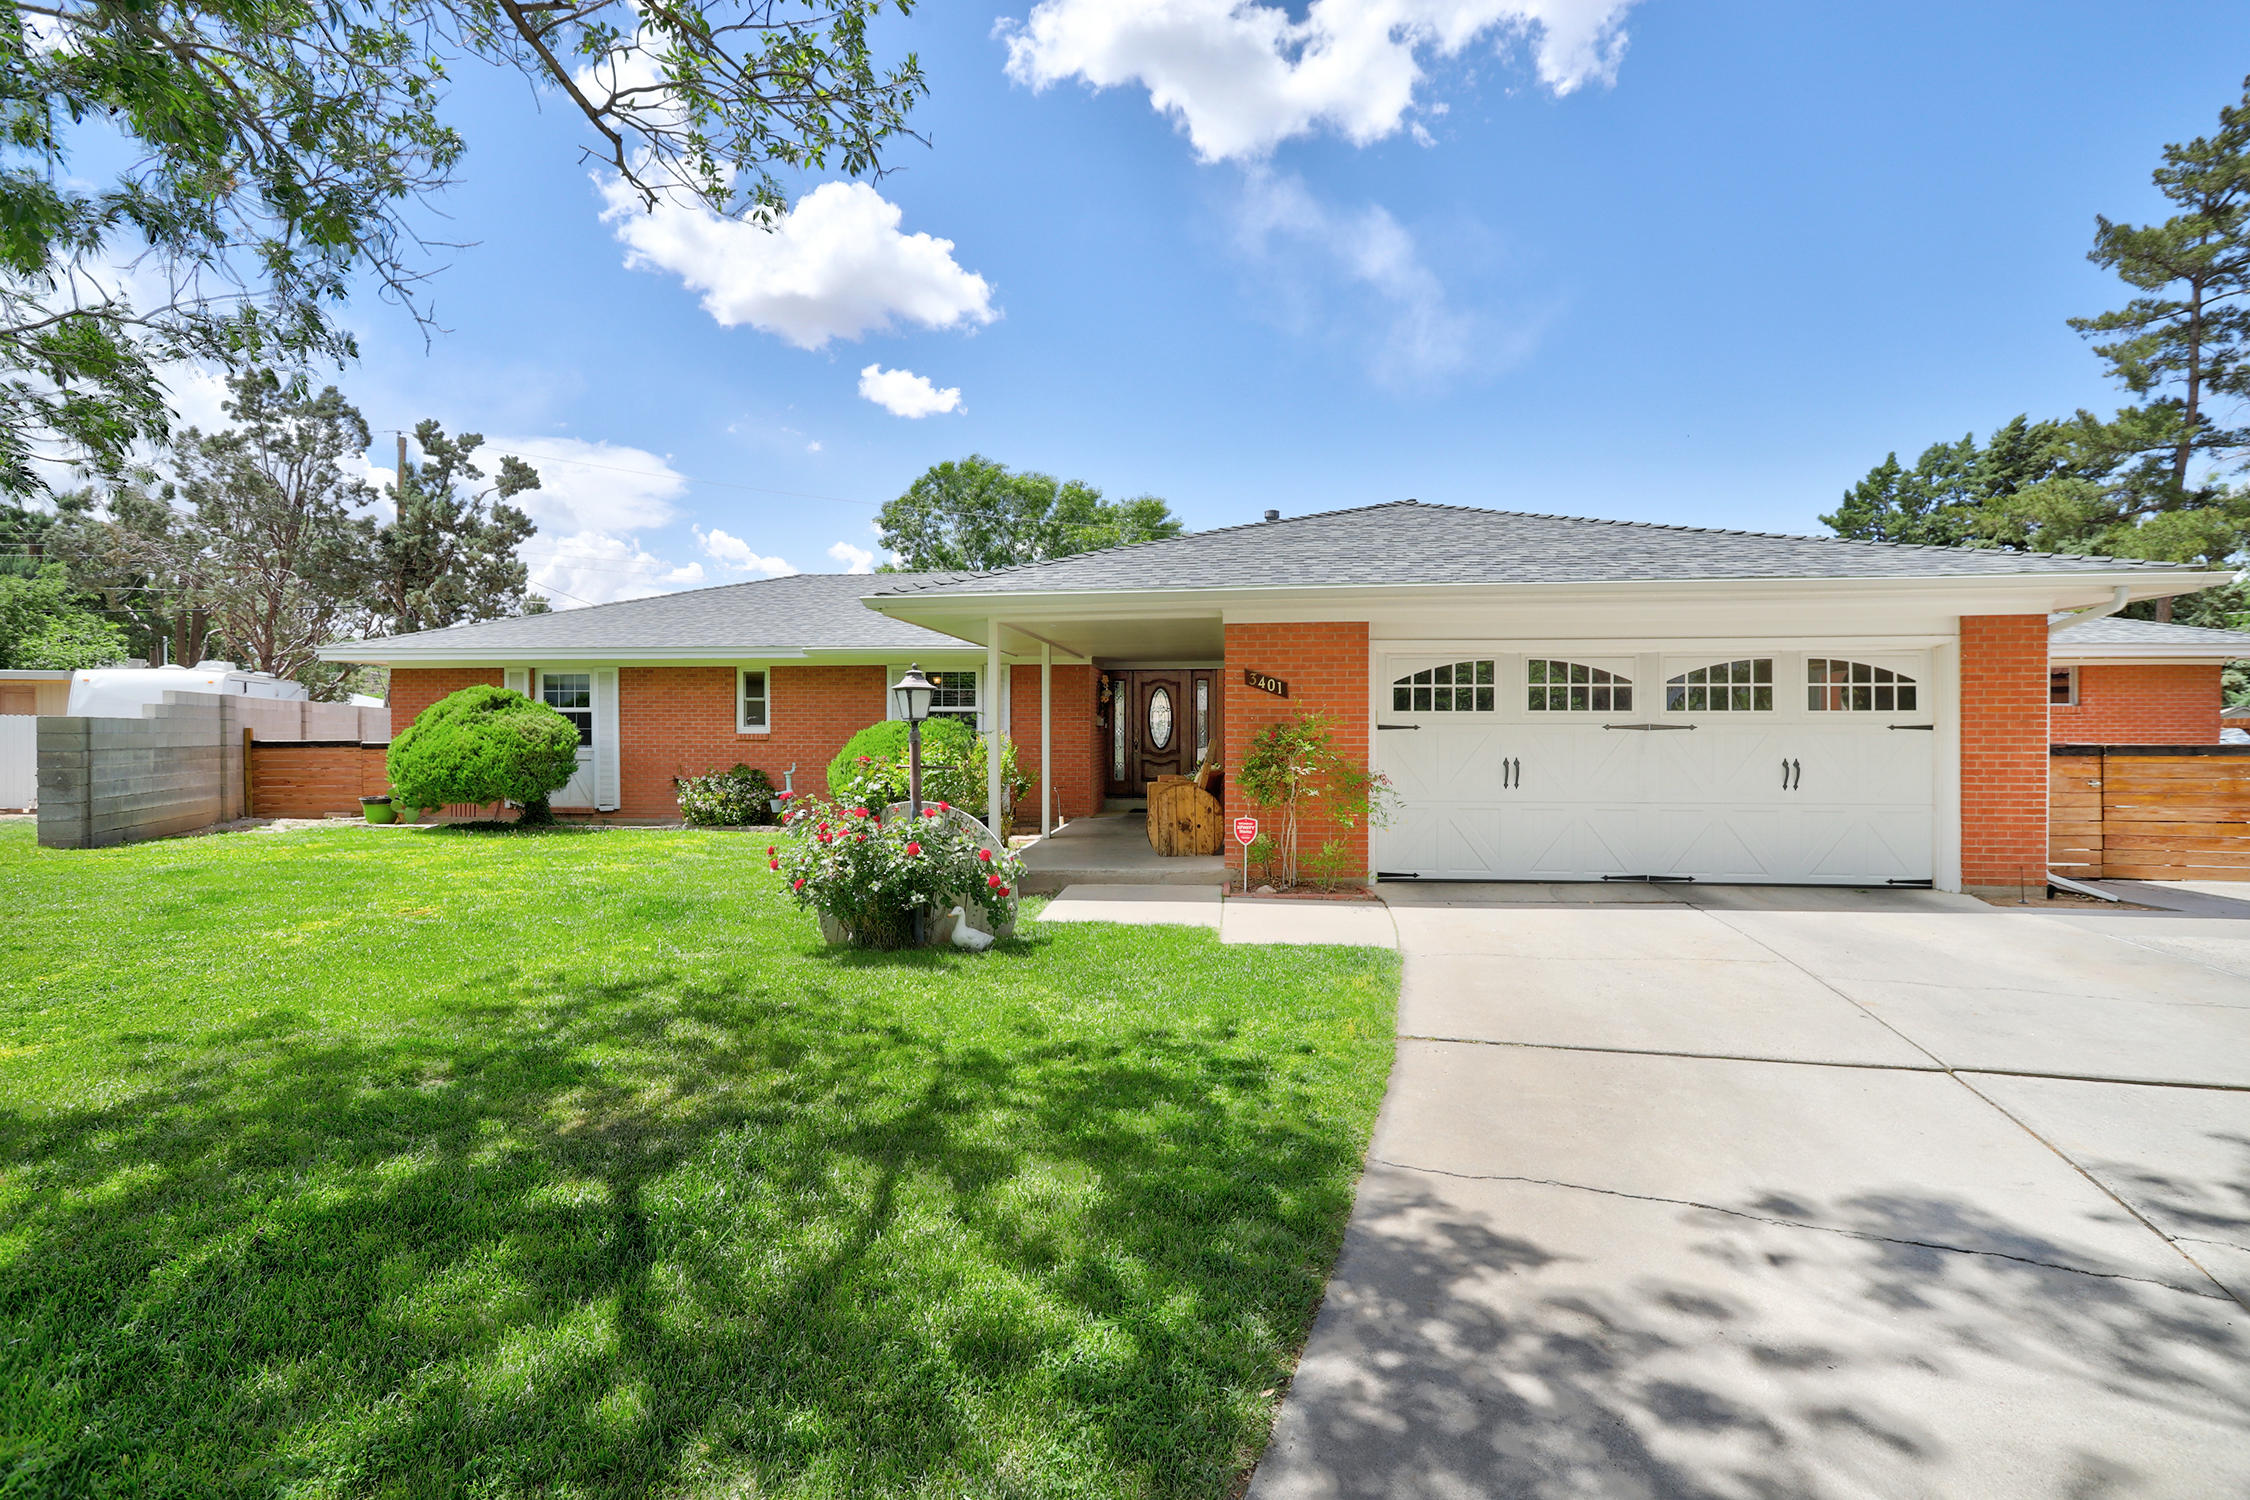 *BUYER DID NOT QUALIFY back on market*Hurry to this REMODELED MOSSMAN situated in a lovely cul de sac. 2 master suites or 3 bed + an in  law suite with its own private entrance & courtyard space. Second master is generously sized w/ BIG walk in closet & 3/4 bath.   So many wonderful upgrades & updates; Complete kitchen remodel w/ new cabinetry, luxury vinyl granite counters, SS appliances , built in desk, all THREE bathrrooms have stylish updated finishes, new roof 2015, brand new evaporative cooler, windows have been replaced, hardwood floors under carpet in 3 bedrooms, living area & hallway.  Backyard is an oasis!   Amazing location is nearby Sandia High School, Arroyo Del Oso Golf Course & endless shopping & restaurants in the area, easy to commute w nearby freeway.